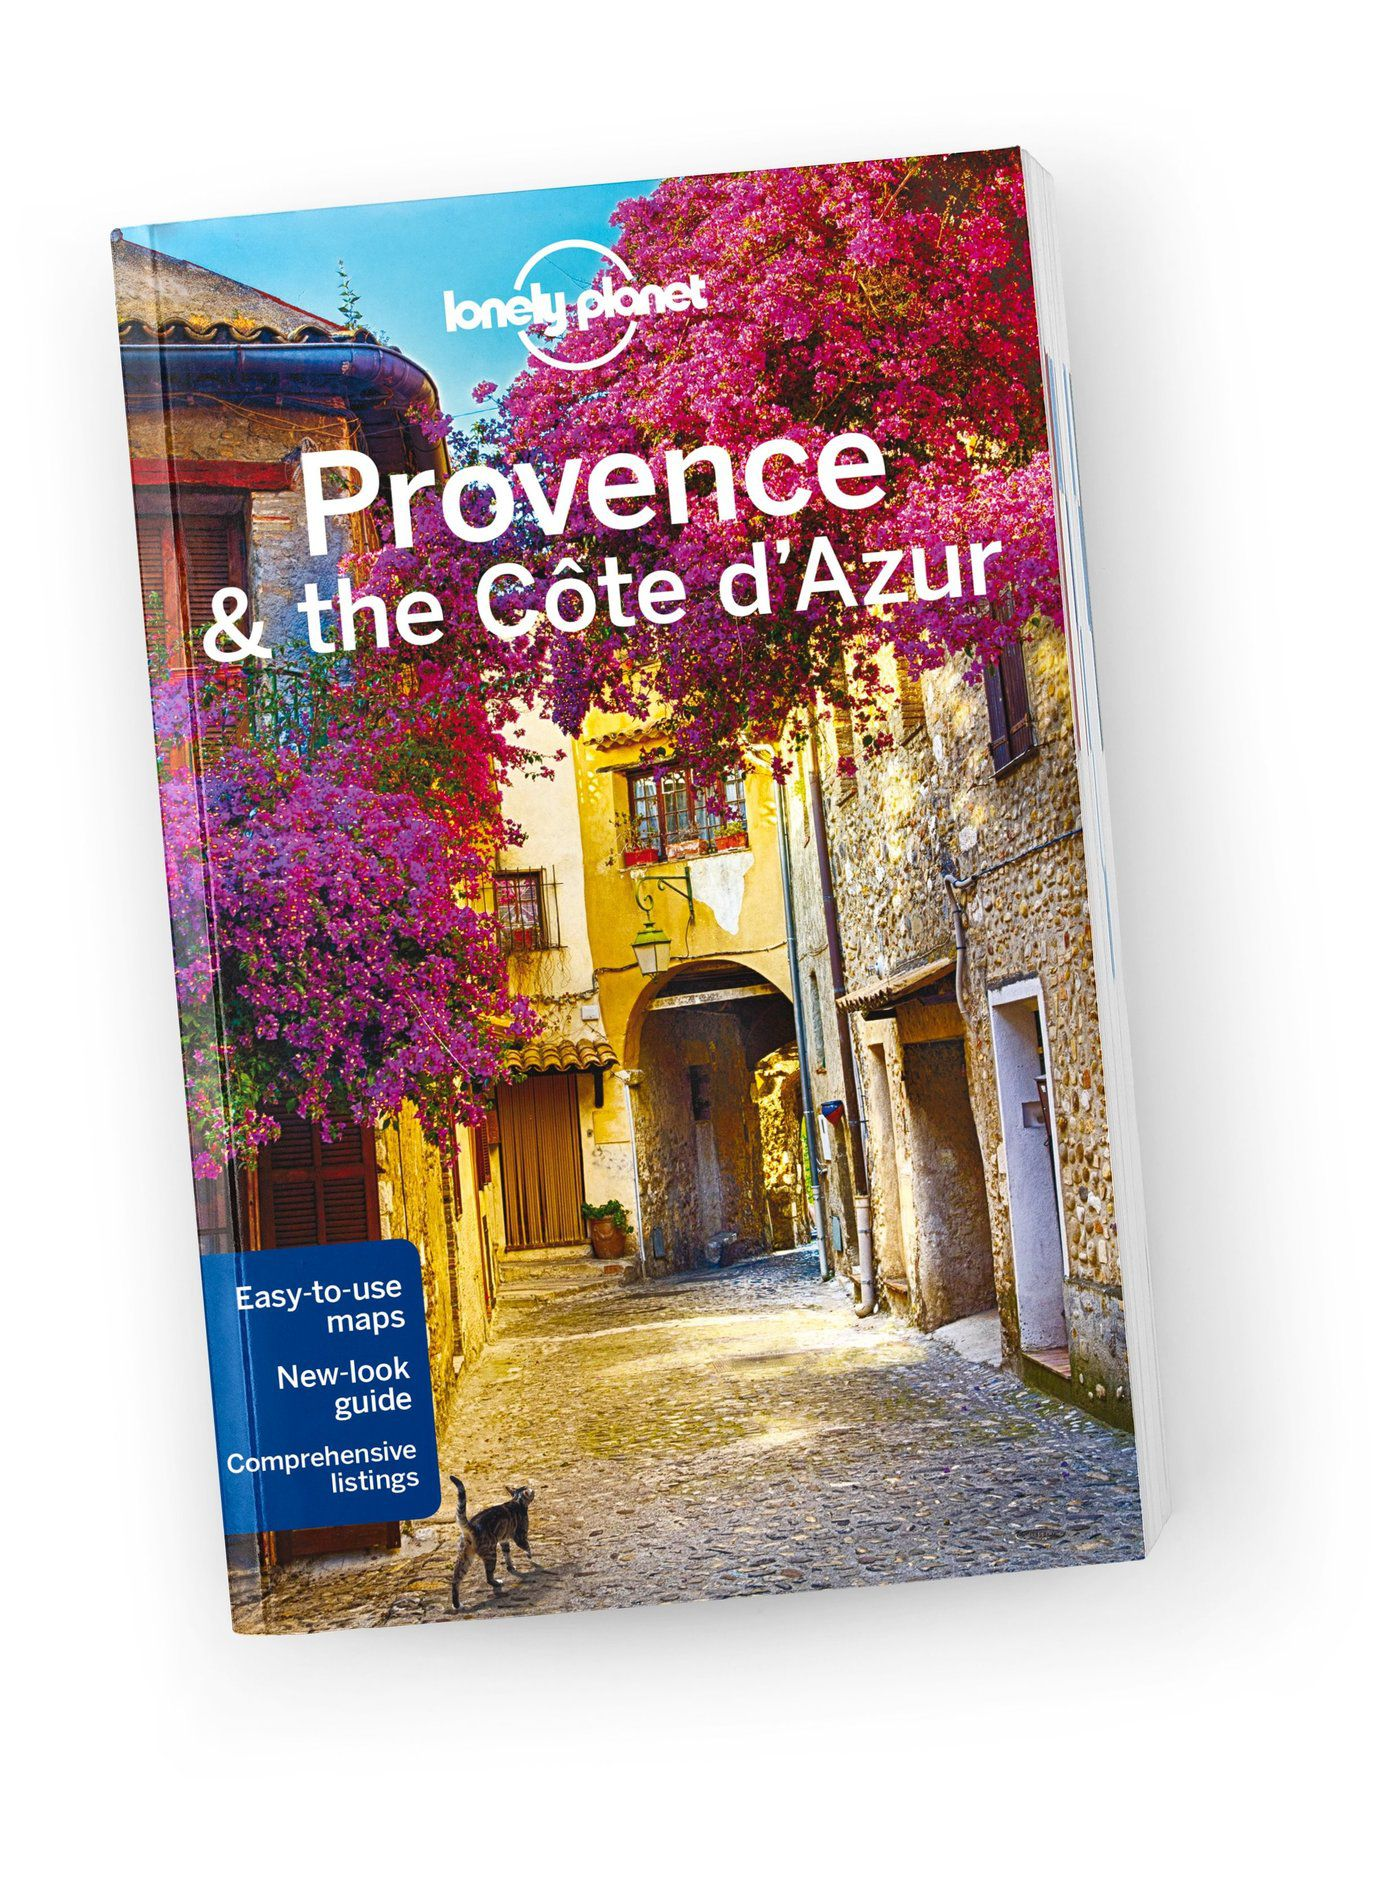 Provence & the Cote d'Azur travel guide, 8th Edition Jan 2016 by Lonely Planet 9781743215661100